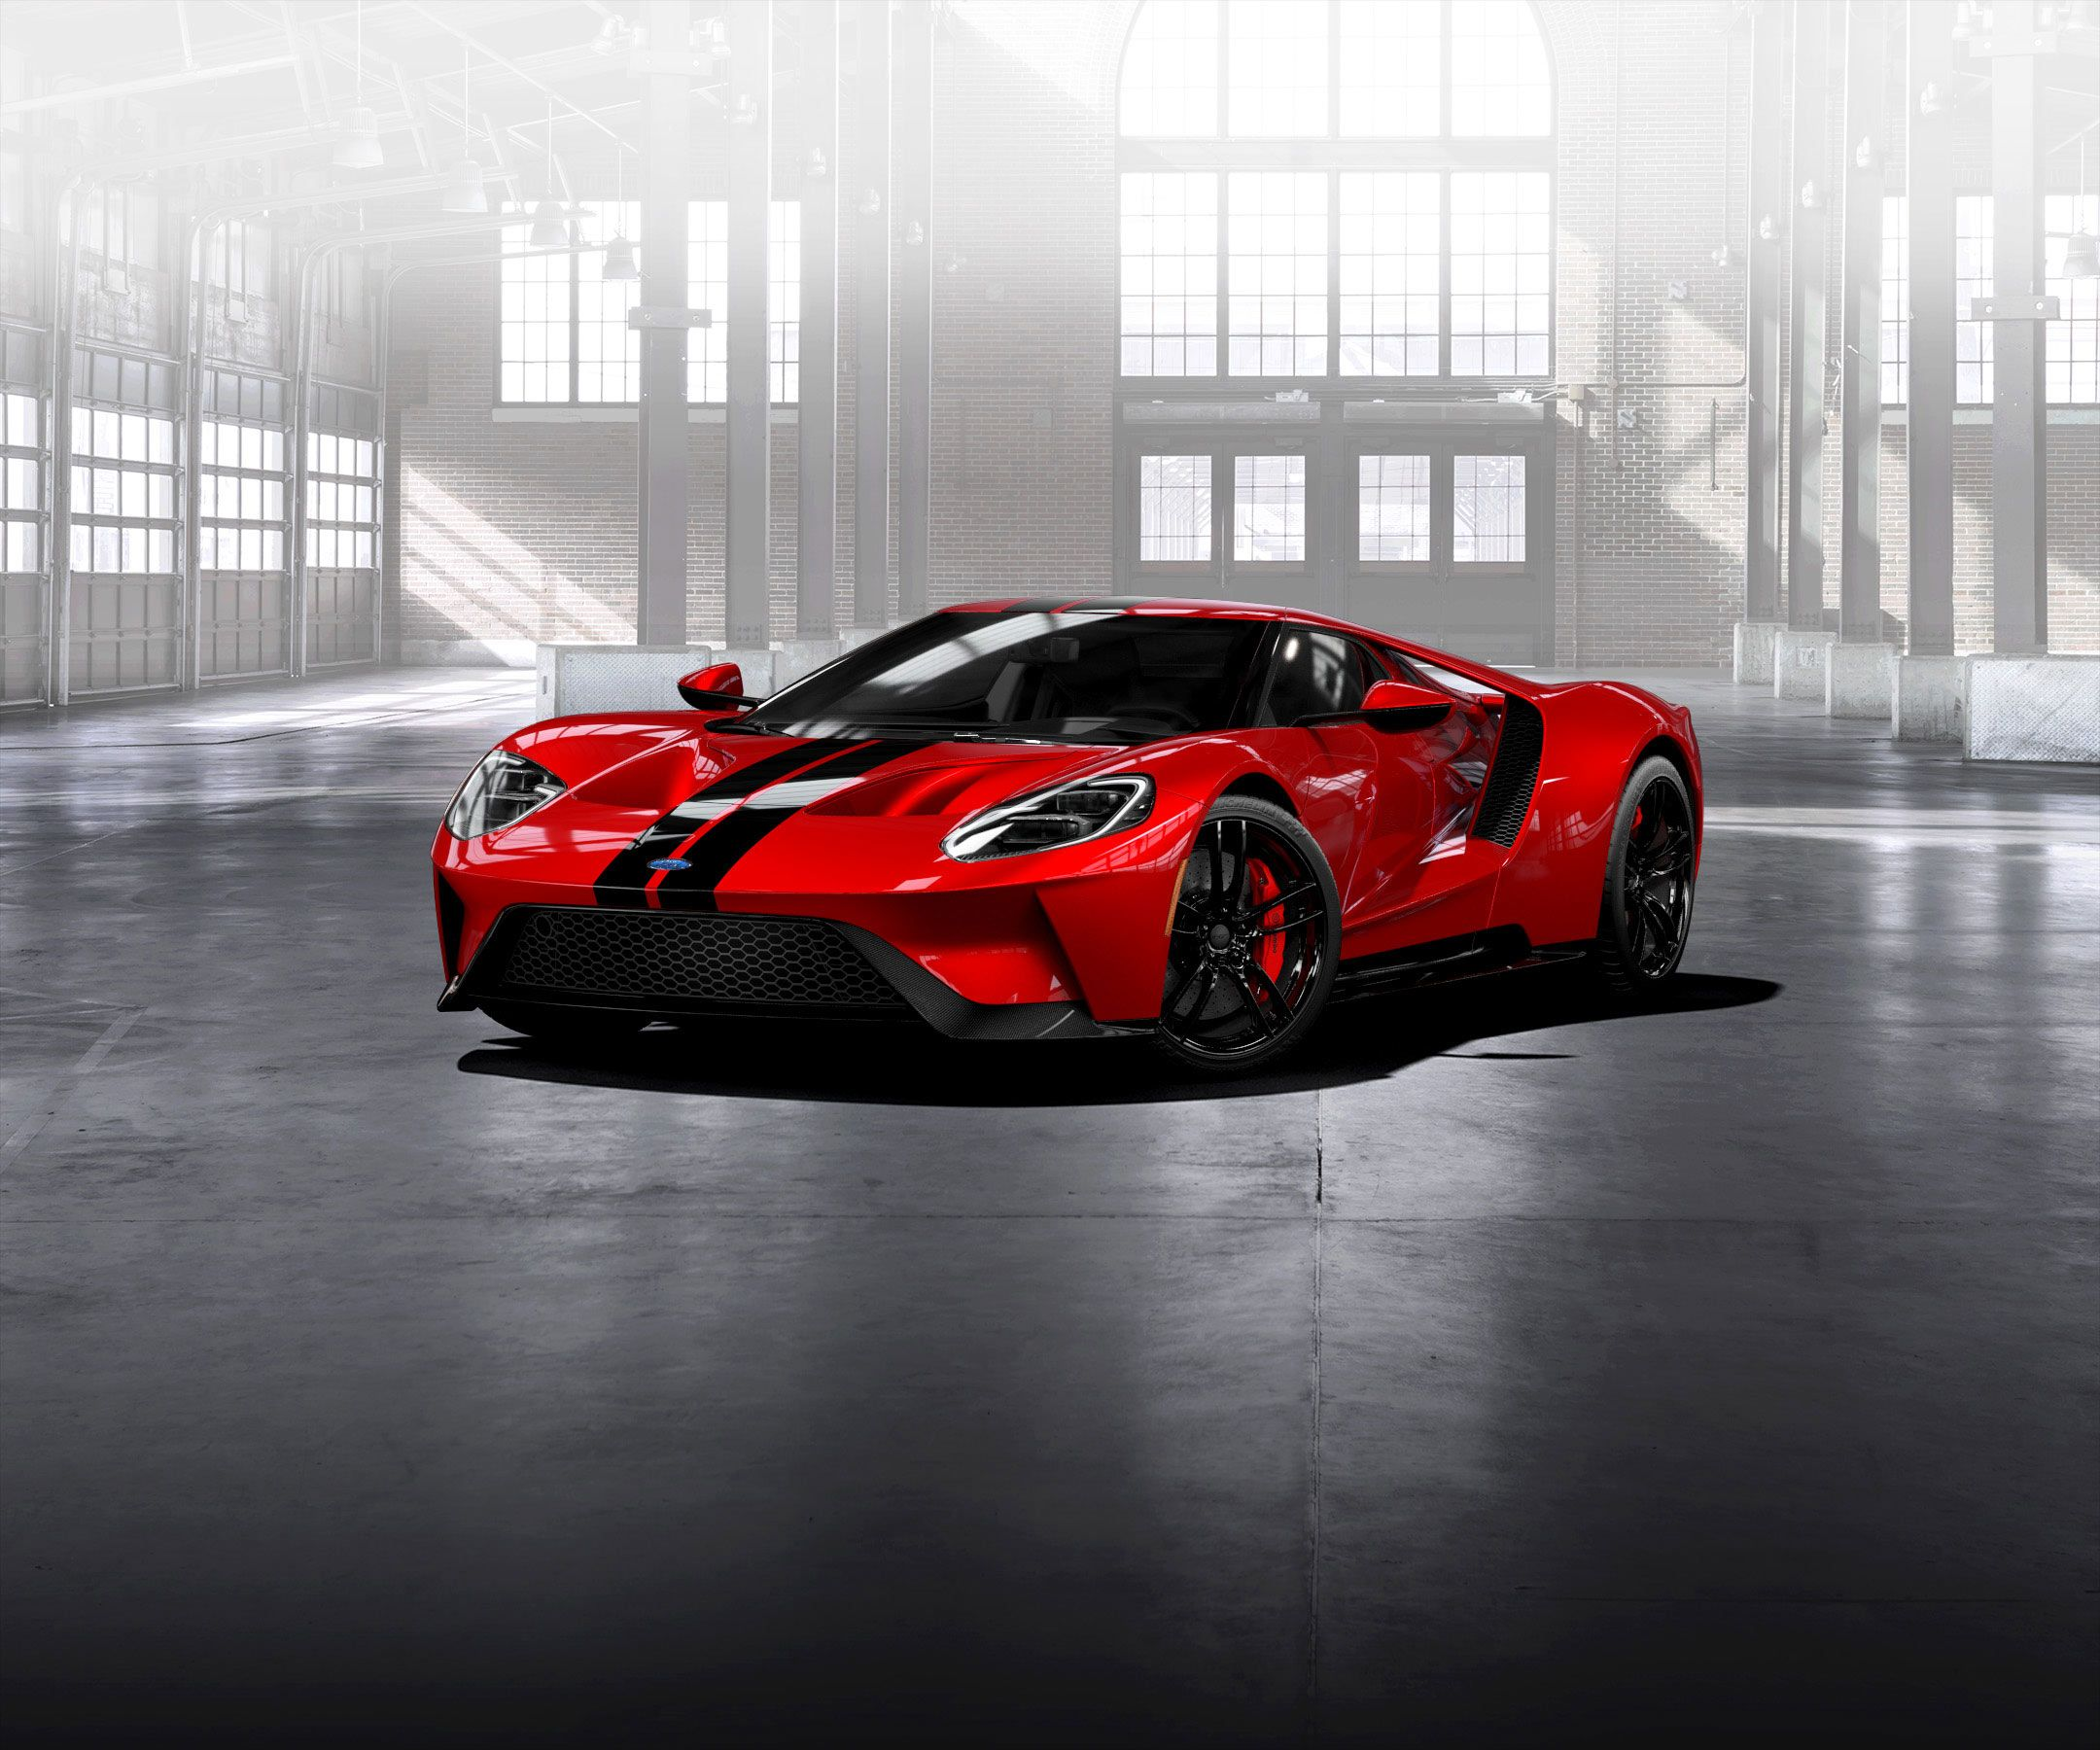 2017 ford gt render painted in liquid red w black stripes cars 2017 ford gt render painted in liquid red w black stripes fandeluxe Image collections